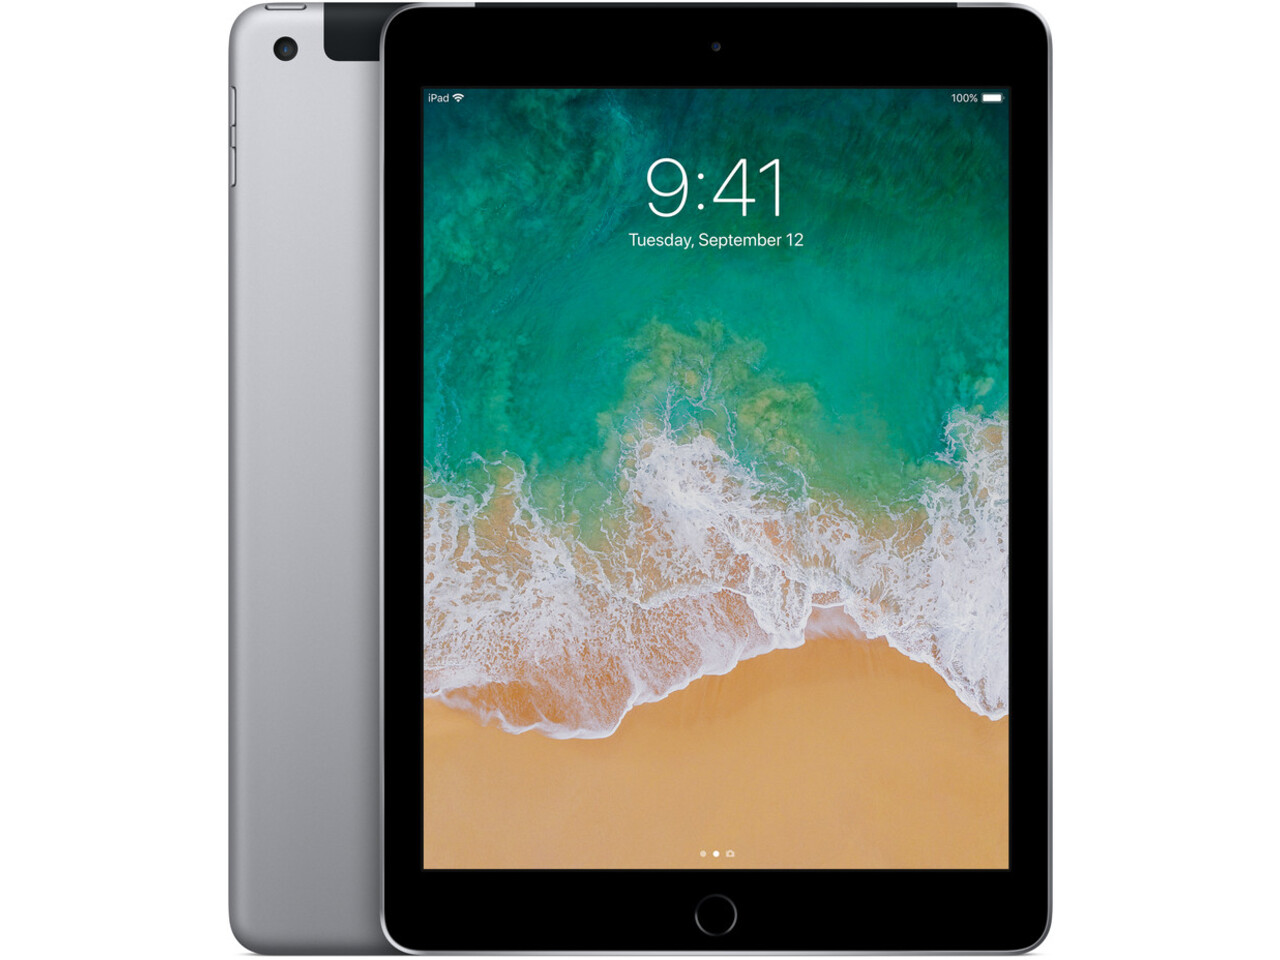 ipad 5 cellular space gray